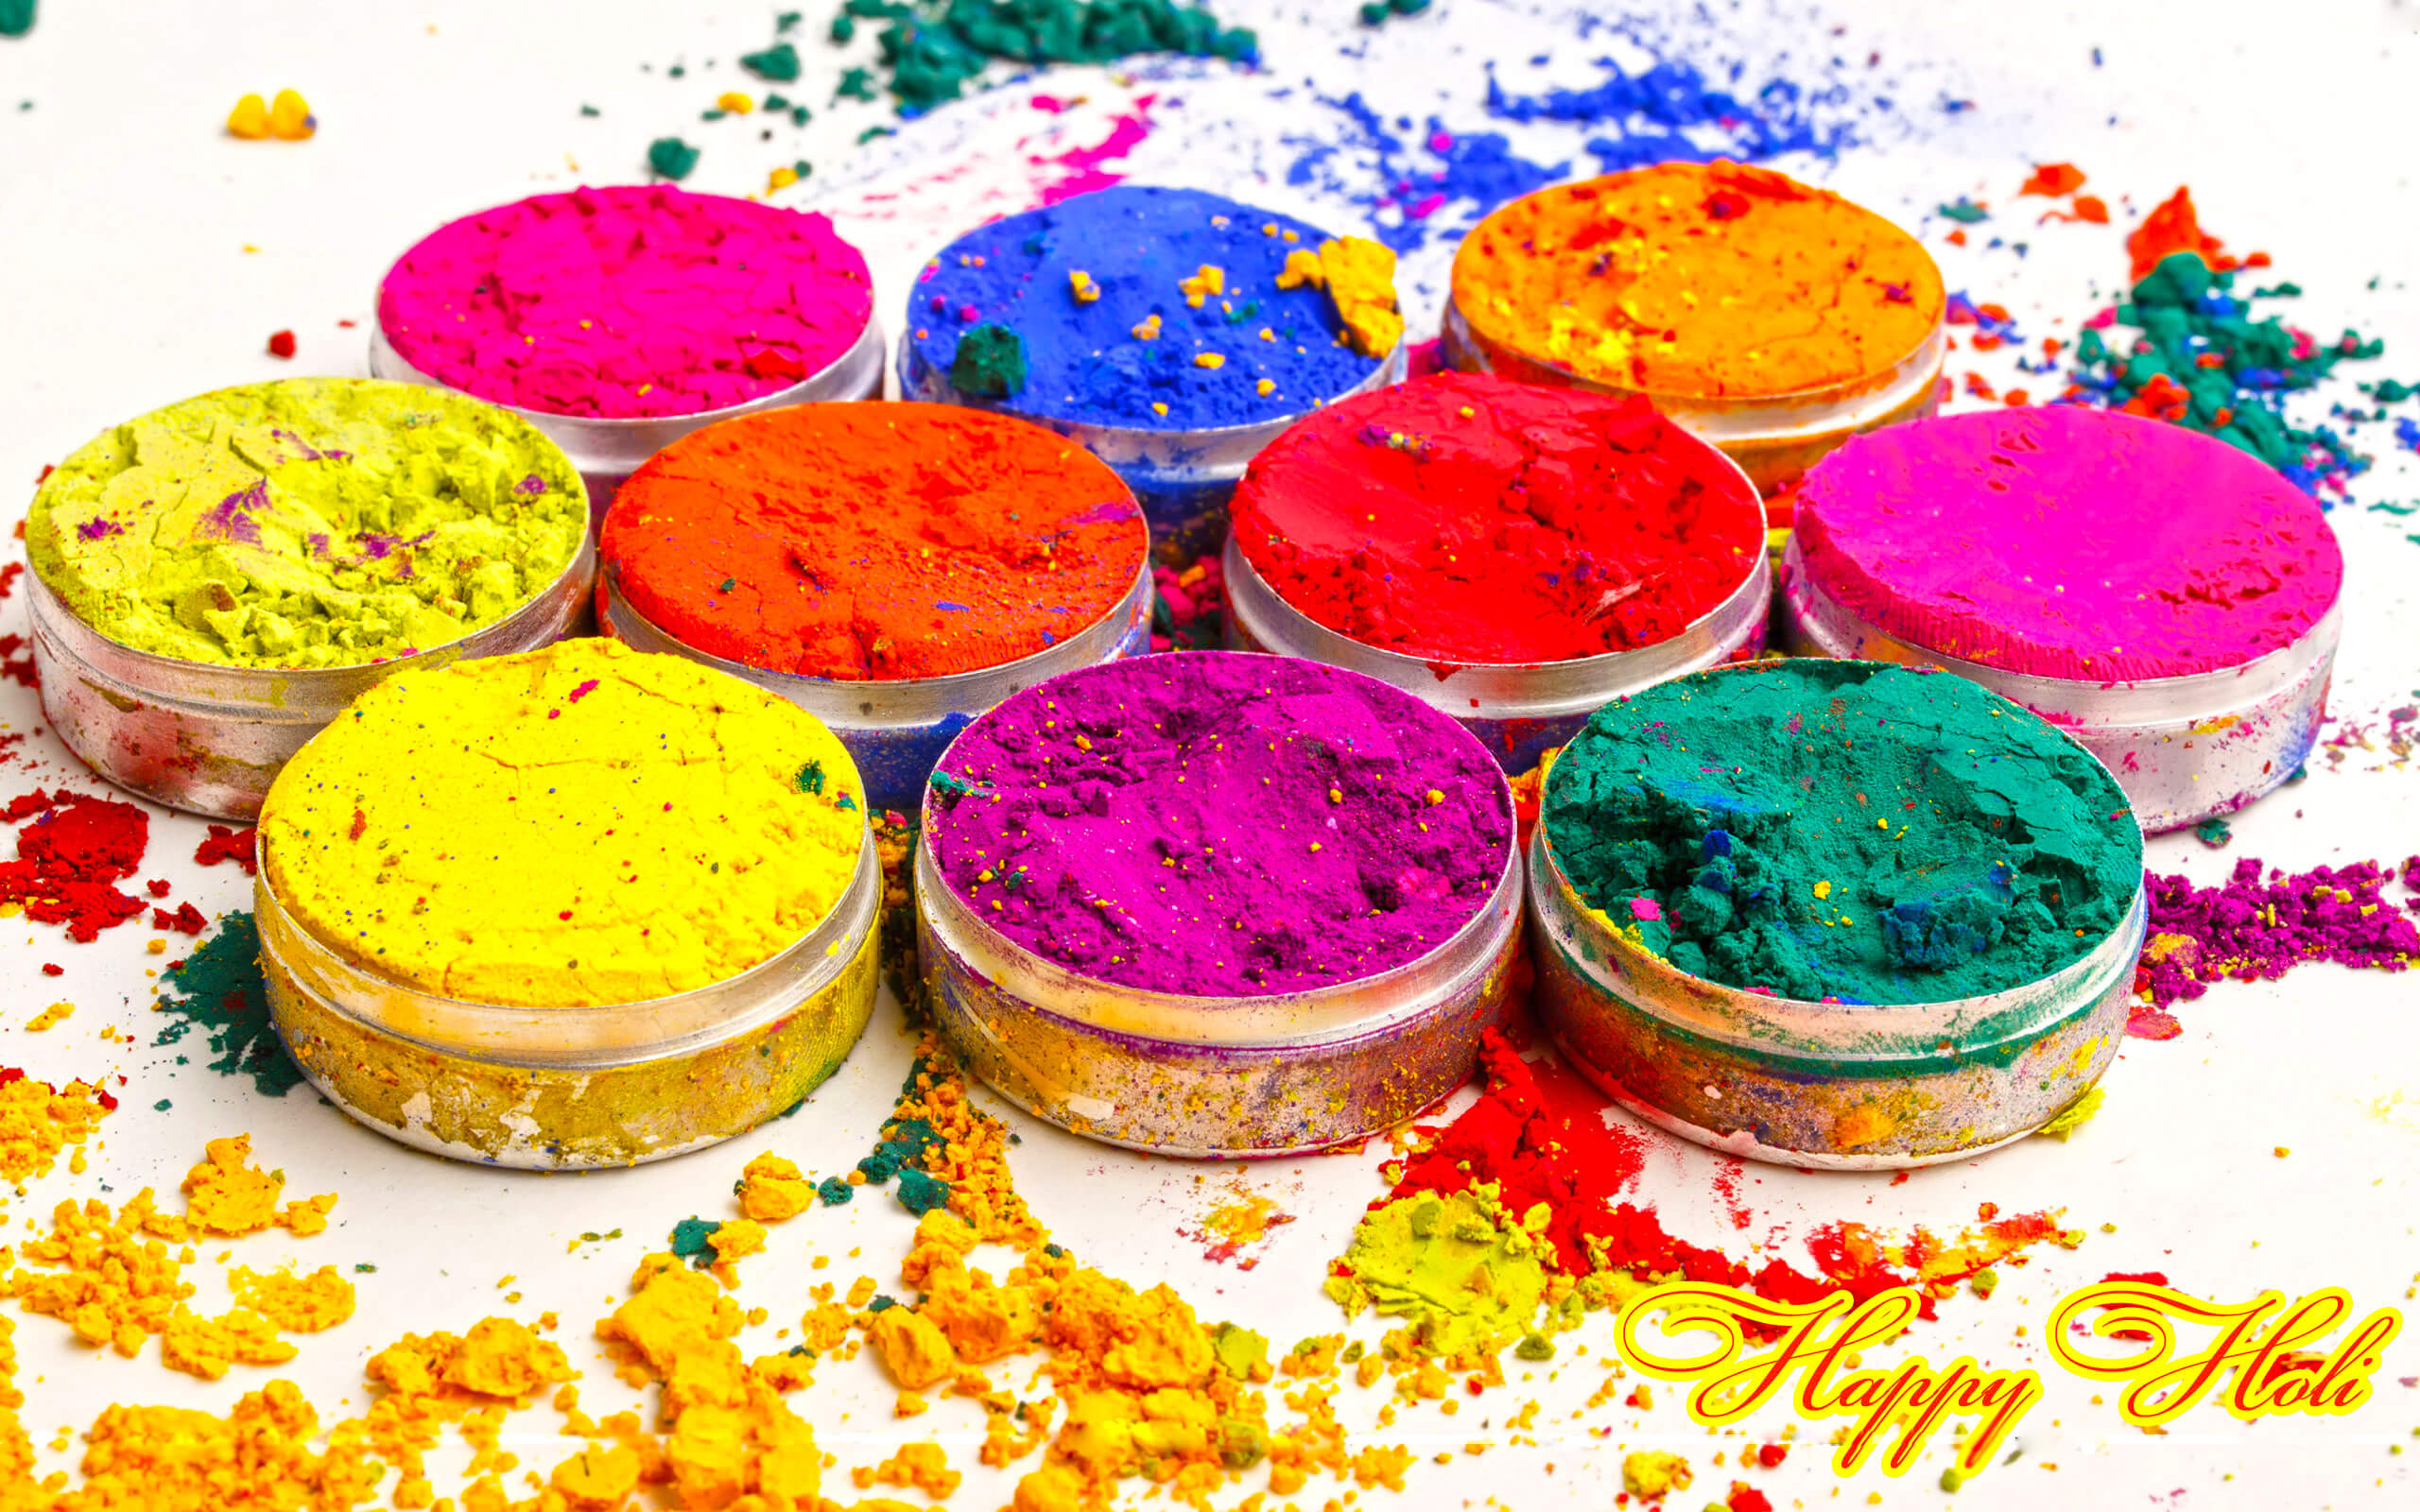 happy holi colorful images, wallpapers, photos hd